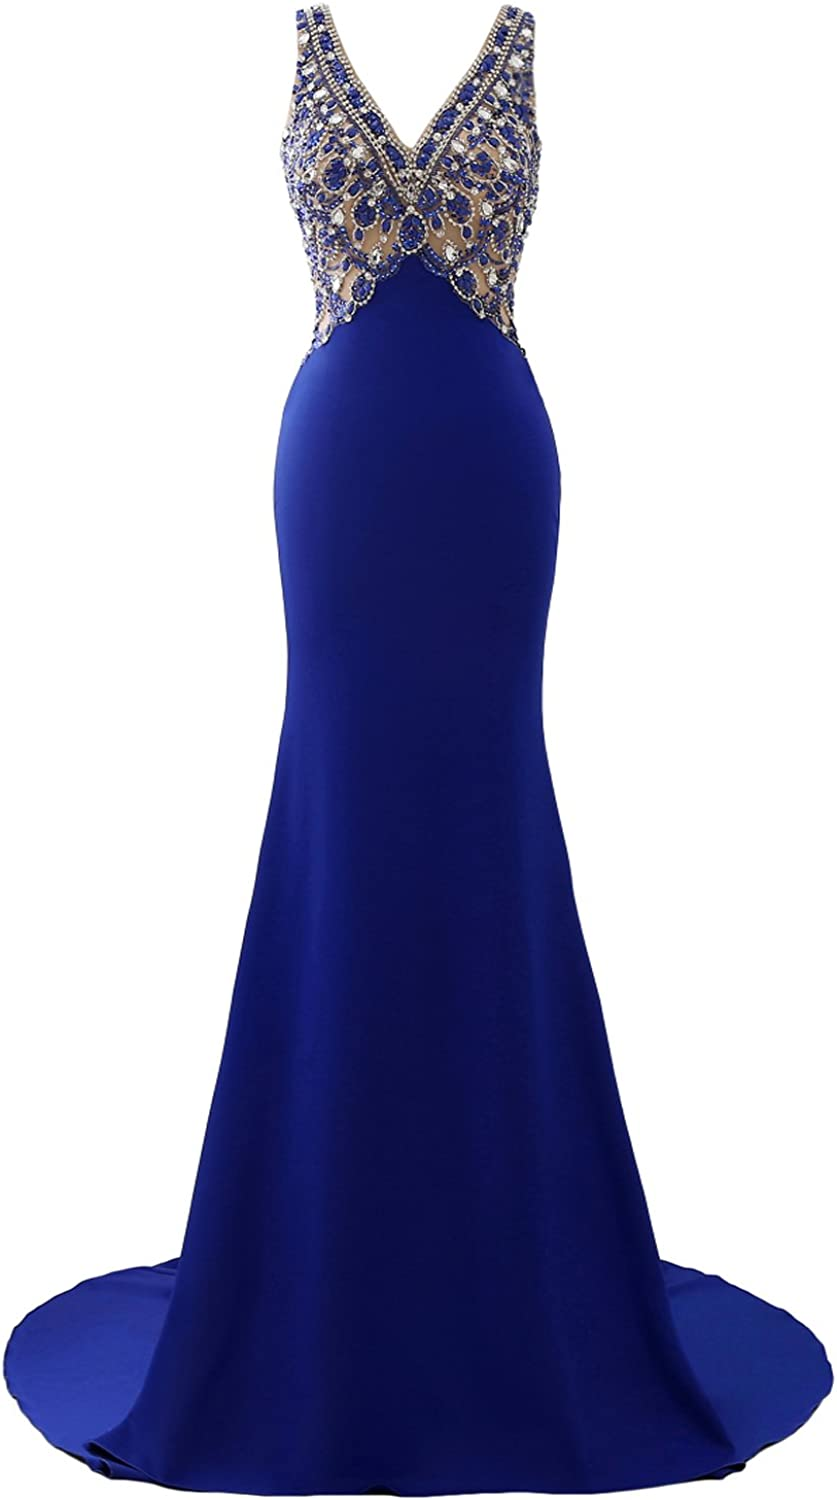 Epinkbridal Sheer V Neck Prom Dress with Jeweled Bodice Sexy Open Back Formal Gowns Mermaid